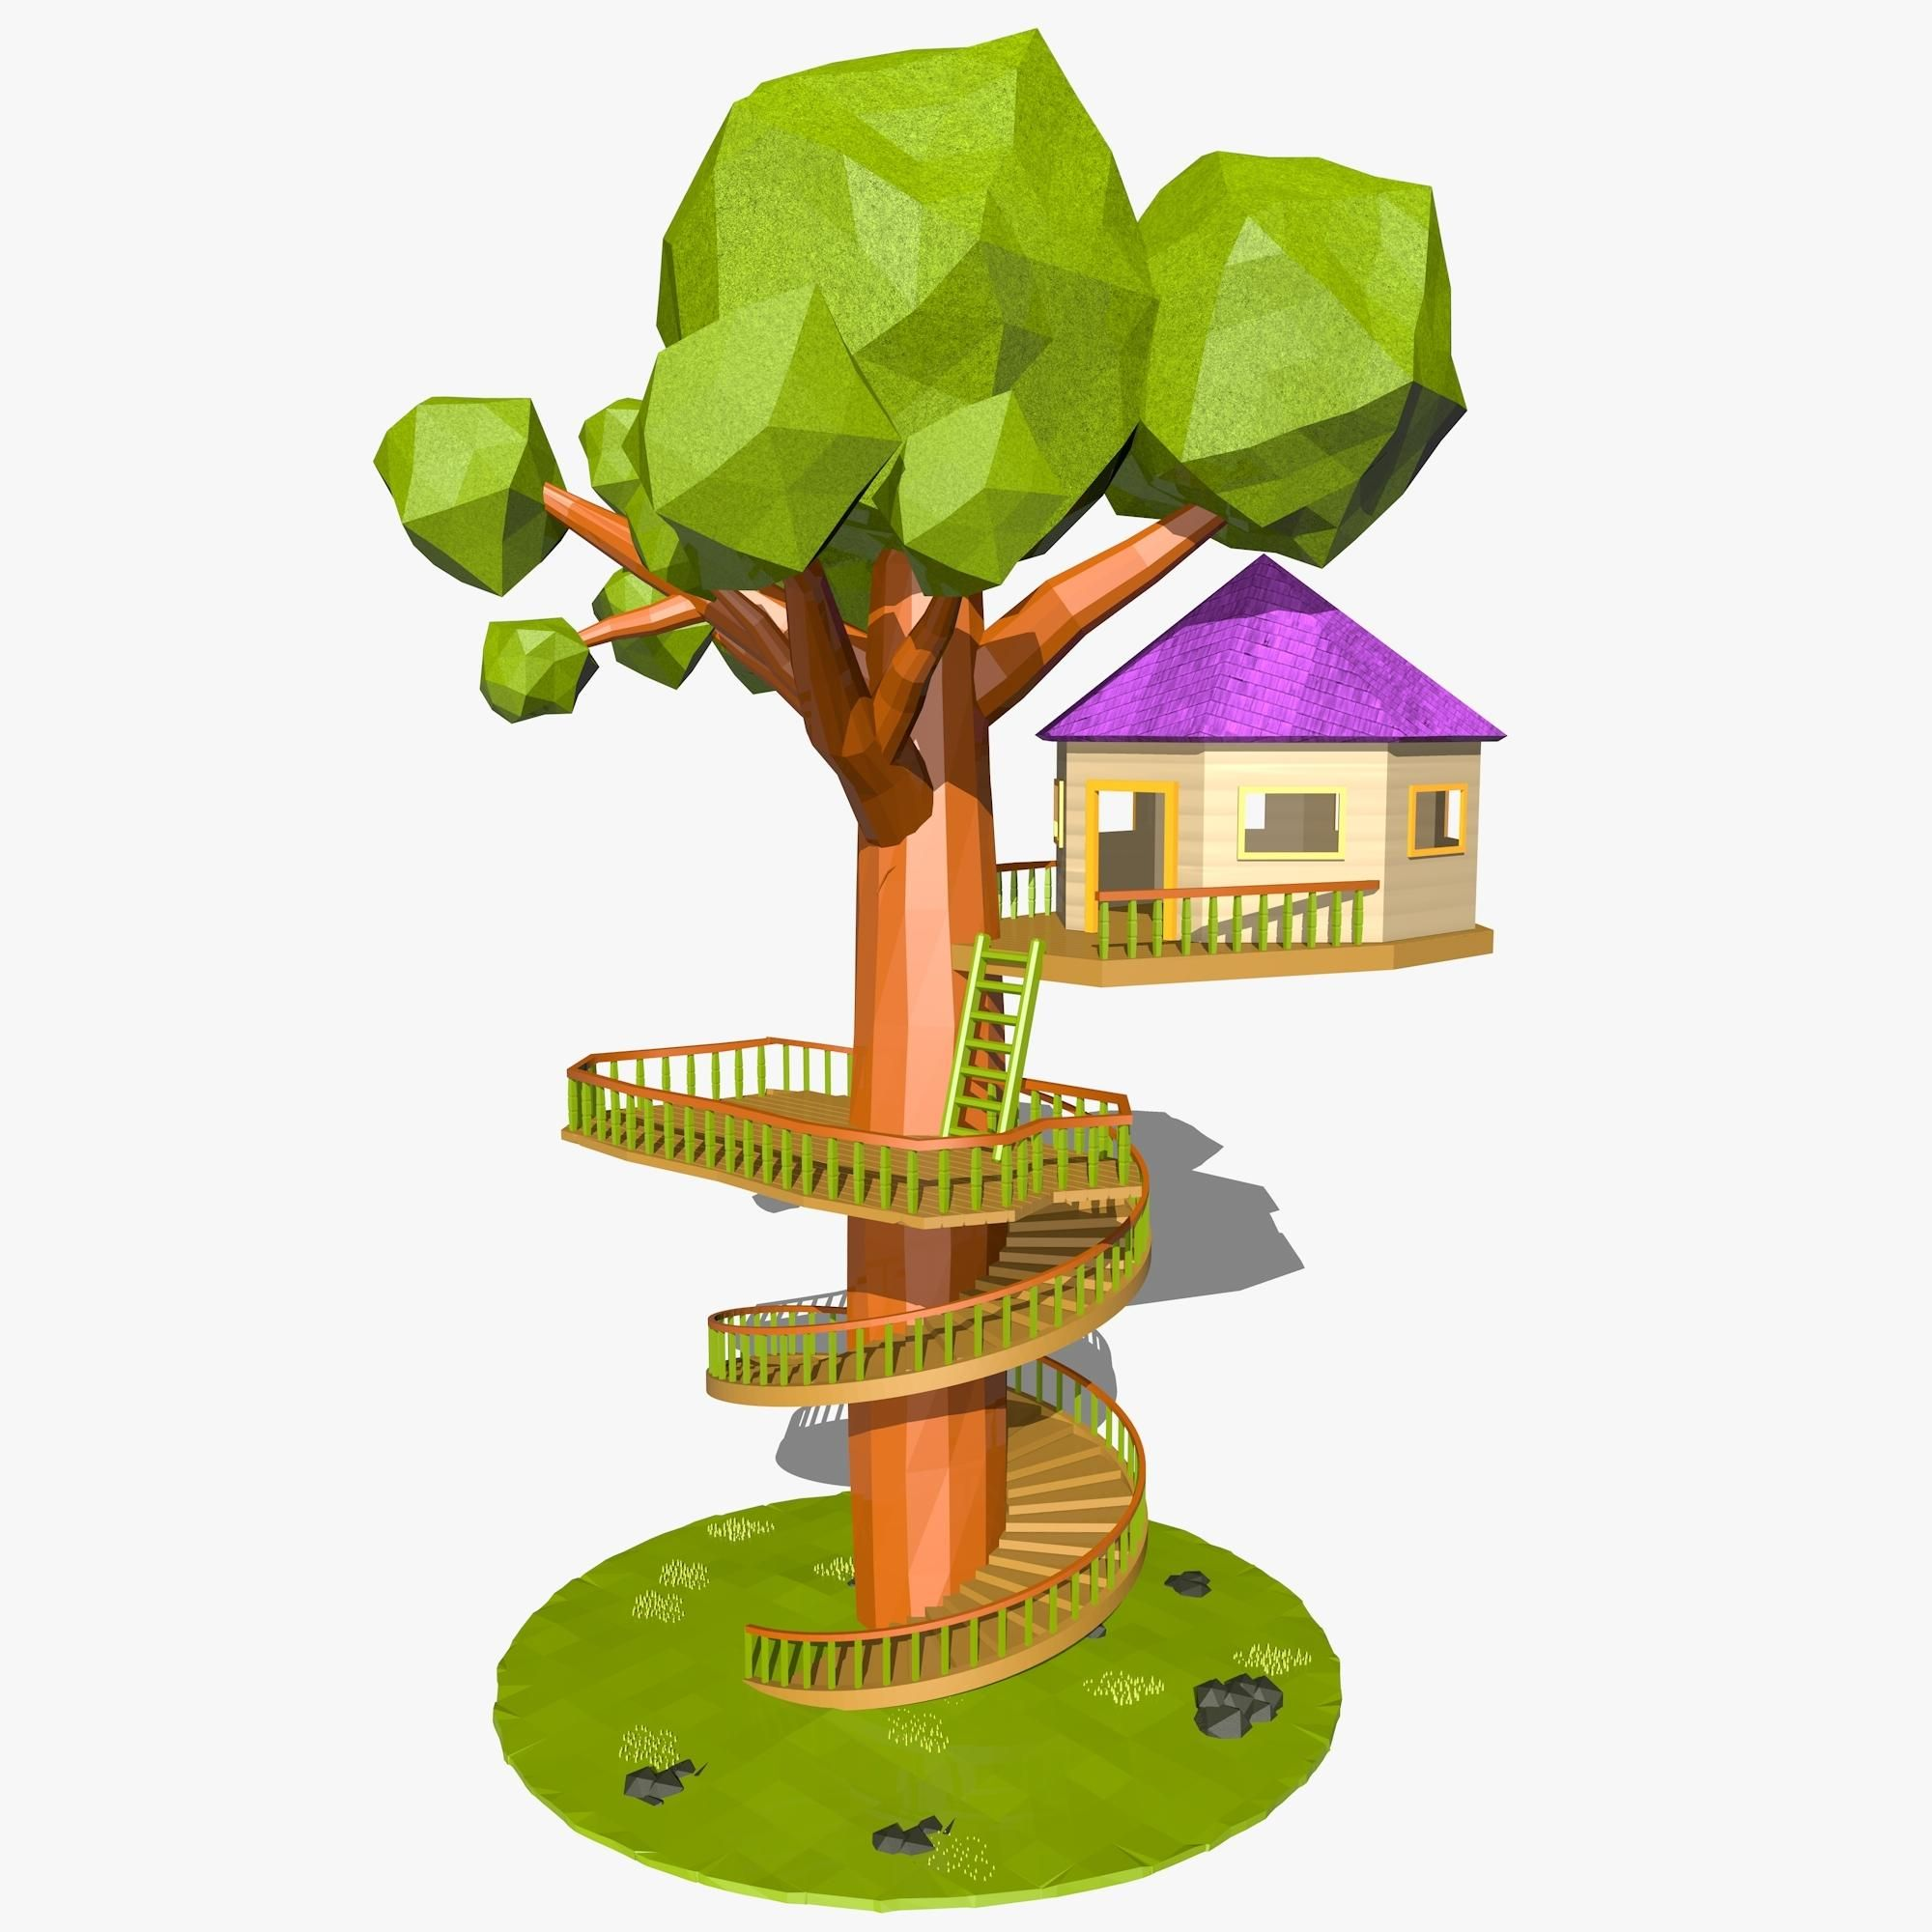 Cartoon Tree House 3d Model Ad Tree Cartoon Model House Cartoon Trees House 3d Model Tree House Please note that the lights, cameras, and background is. cartoon tree house 3d model ad tree